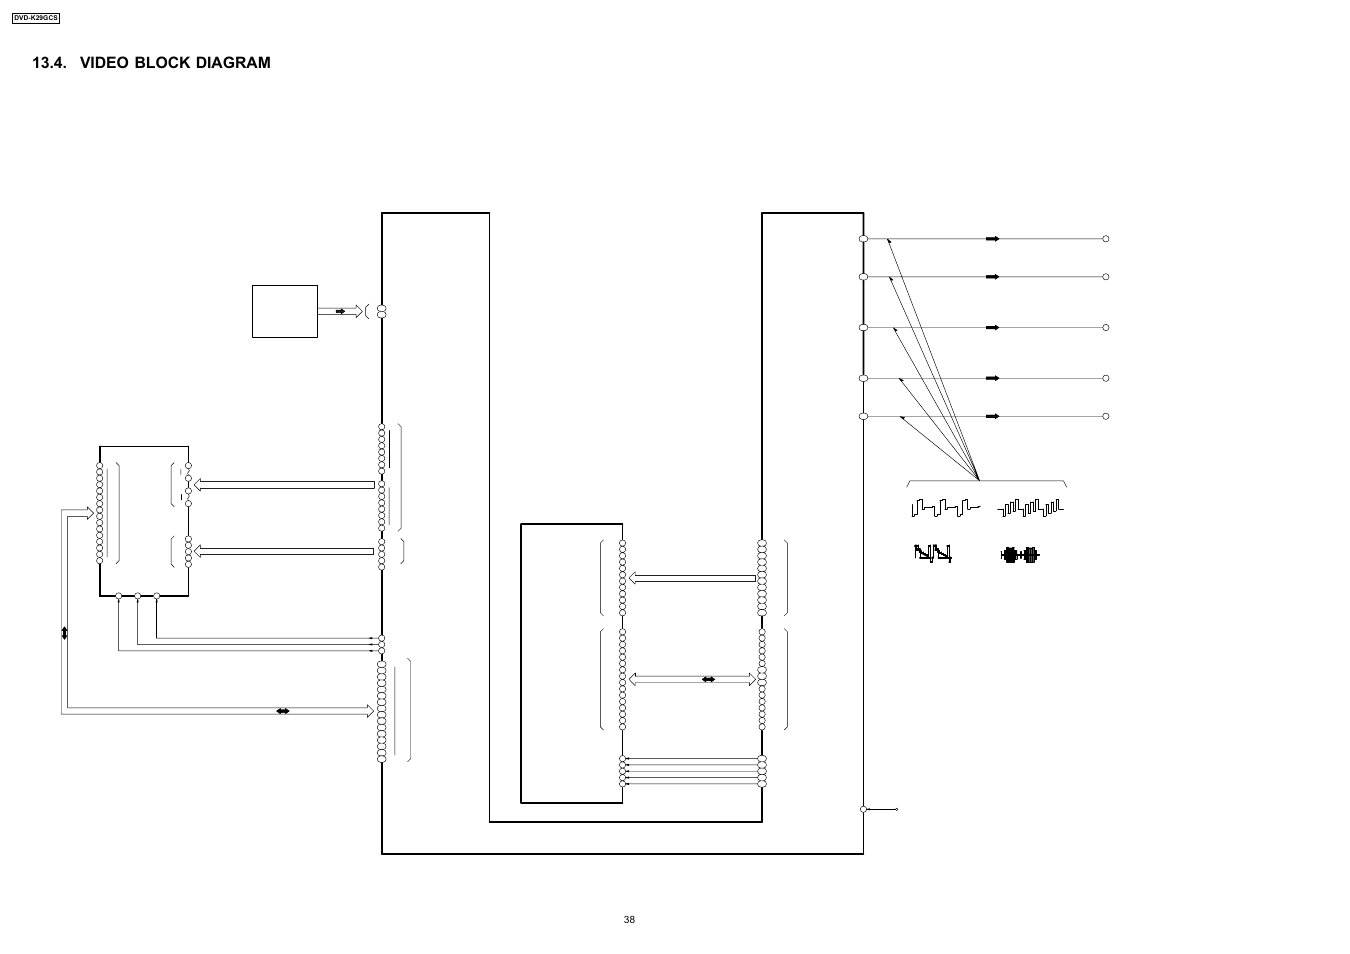 hight resolution of video block diagram dvd k29gcs video block diagram panasonic dvd k29gcs user manual page 38 64